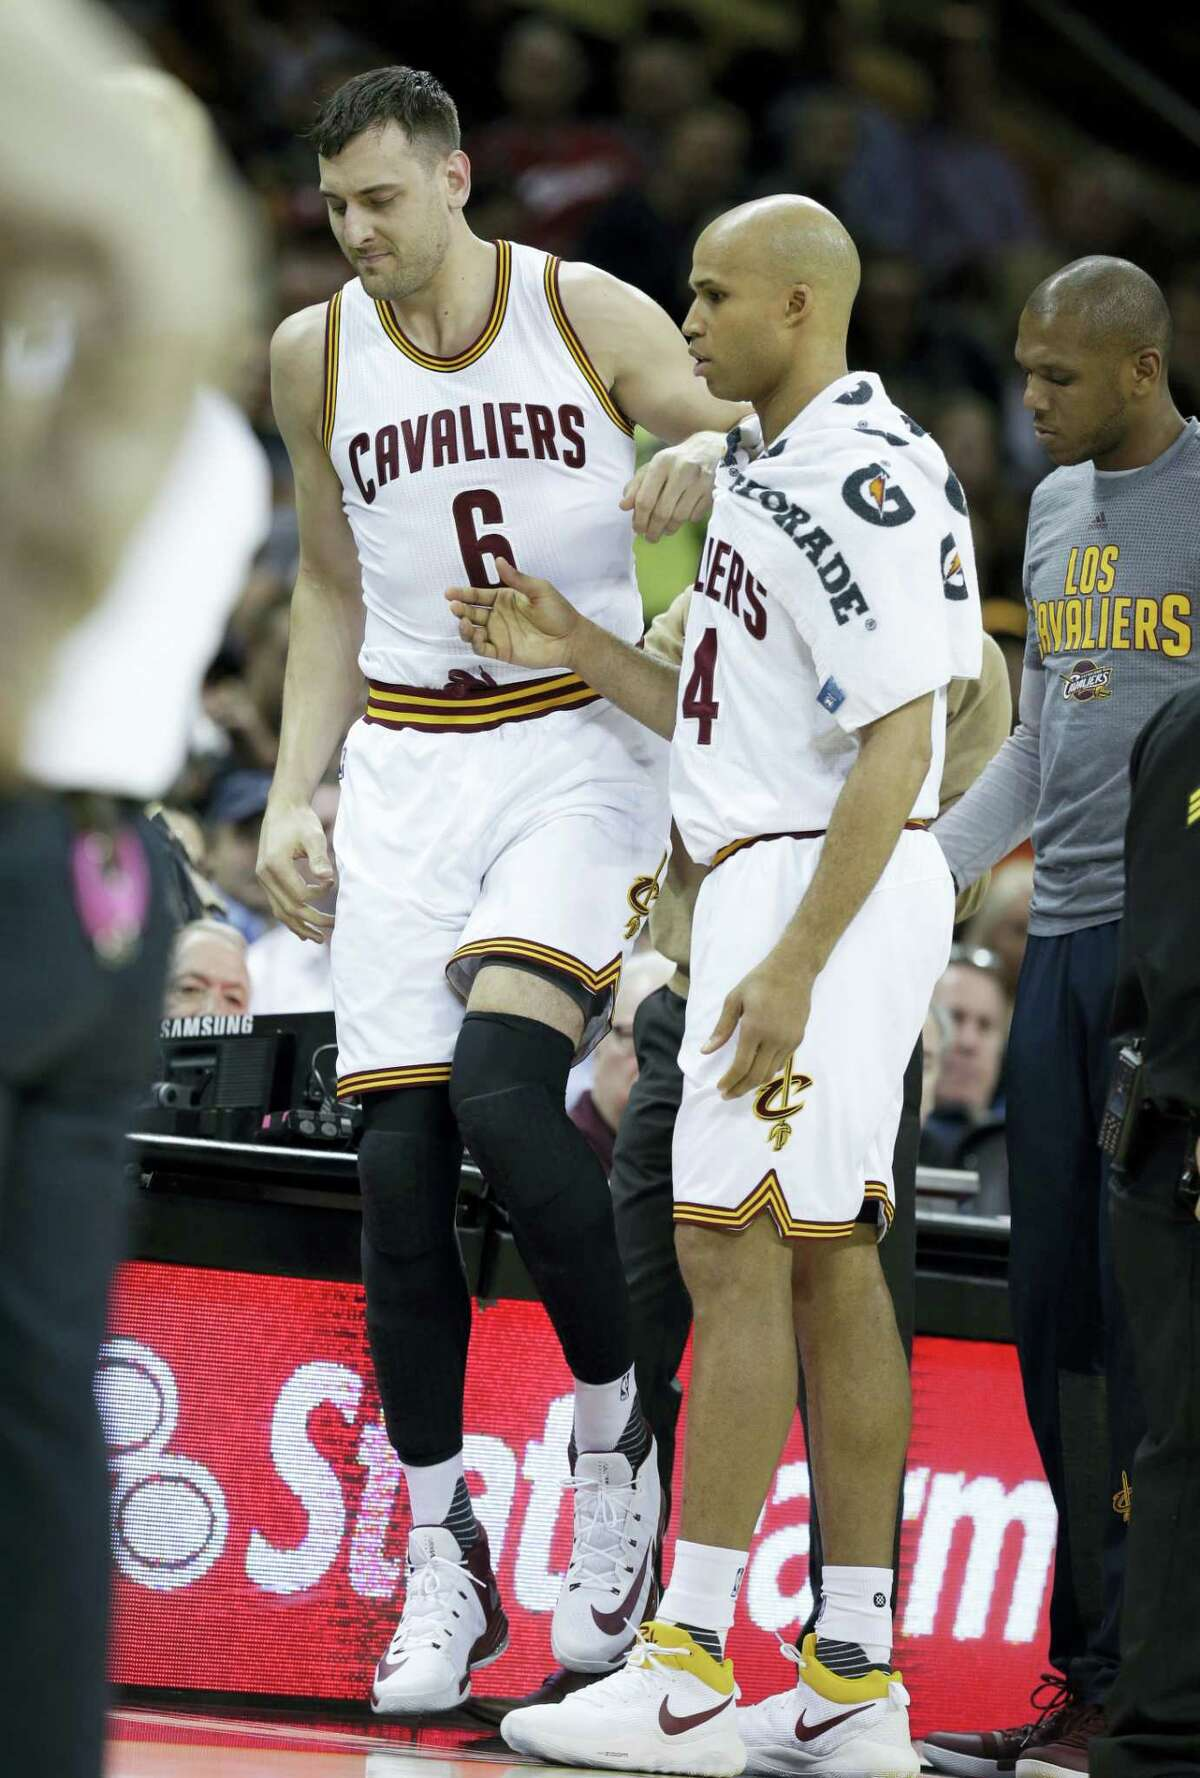 Cleveland Cavaliers' Andrew Bogut (6) is helped up by Cleveland Cavaliers' Richard Jefferson (24) in the first half of an NBA basketball game against the Miami Heat on March 6, 2017 in Cleveland. Initial X-rays and evaluation of Bogut revealed a fractured left tibia. The Heat won 106-98.